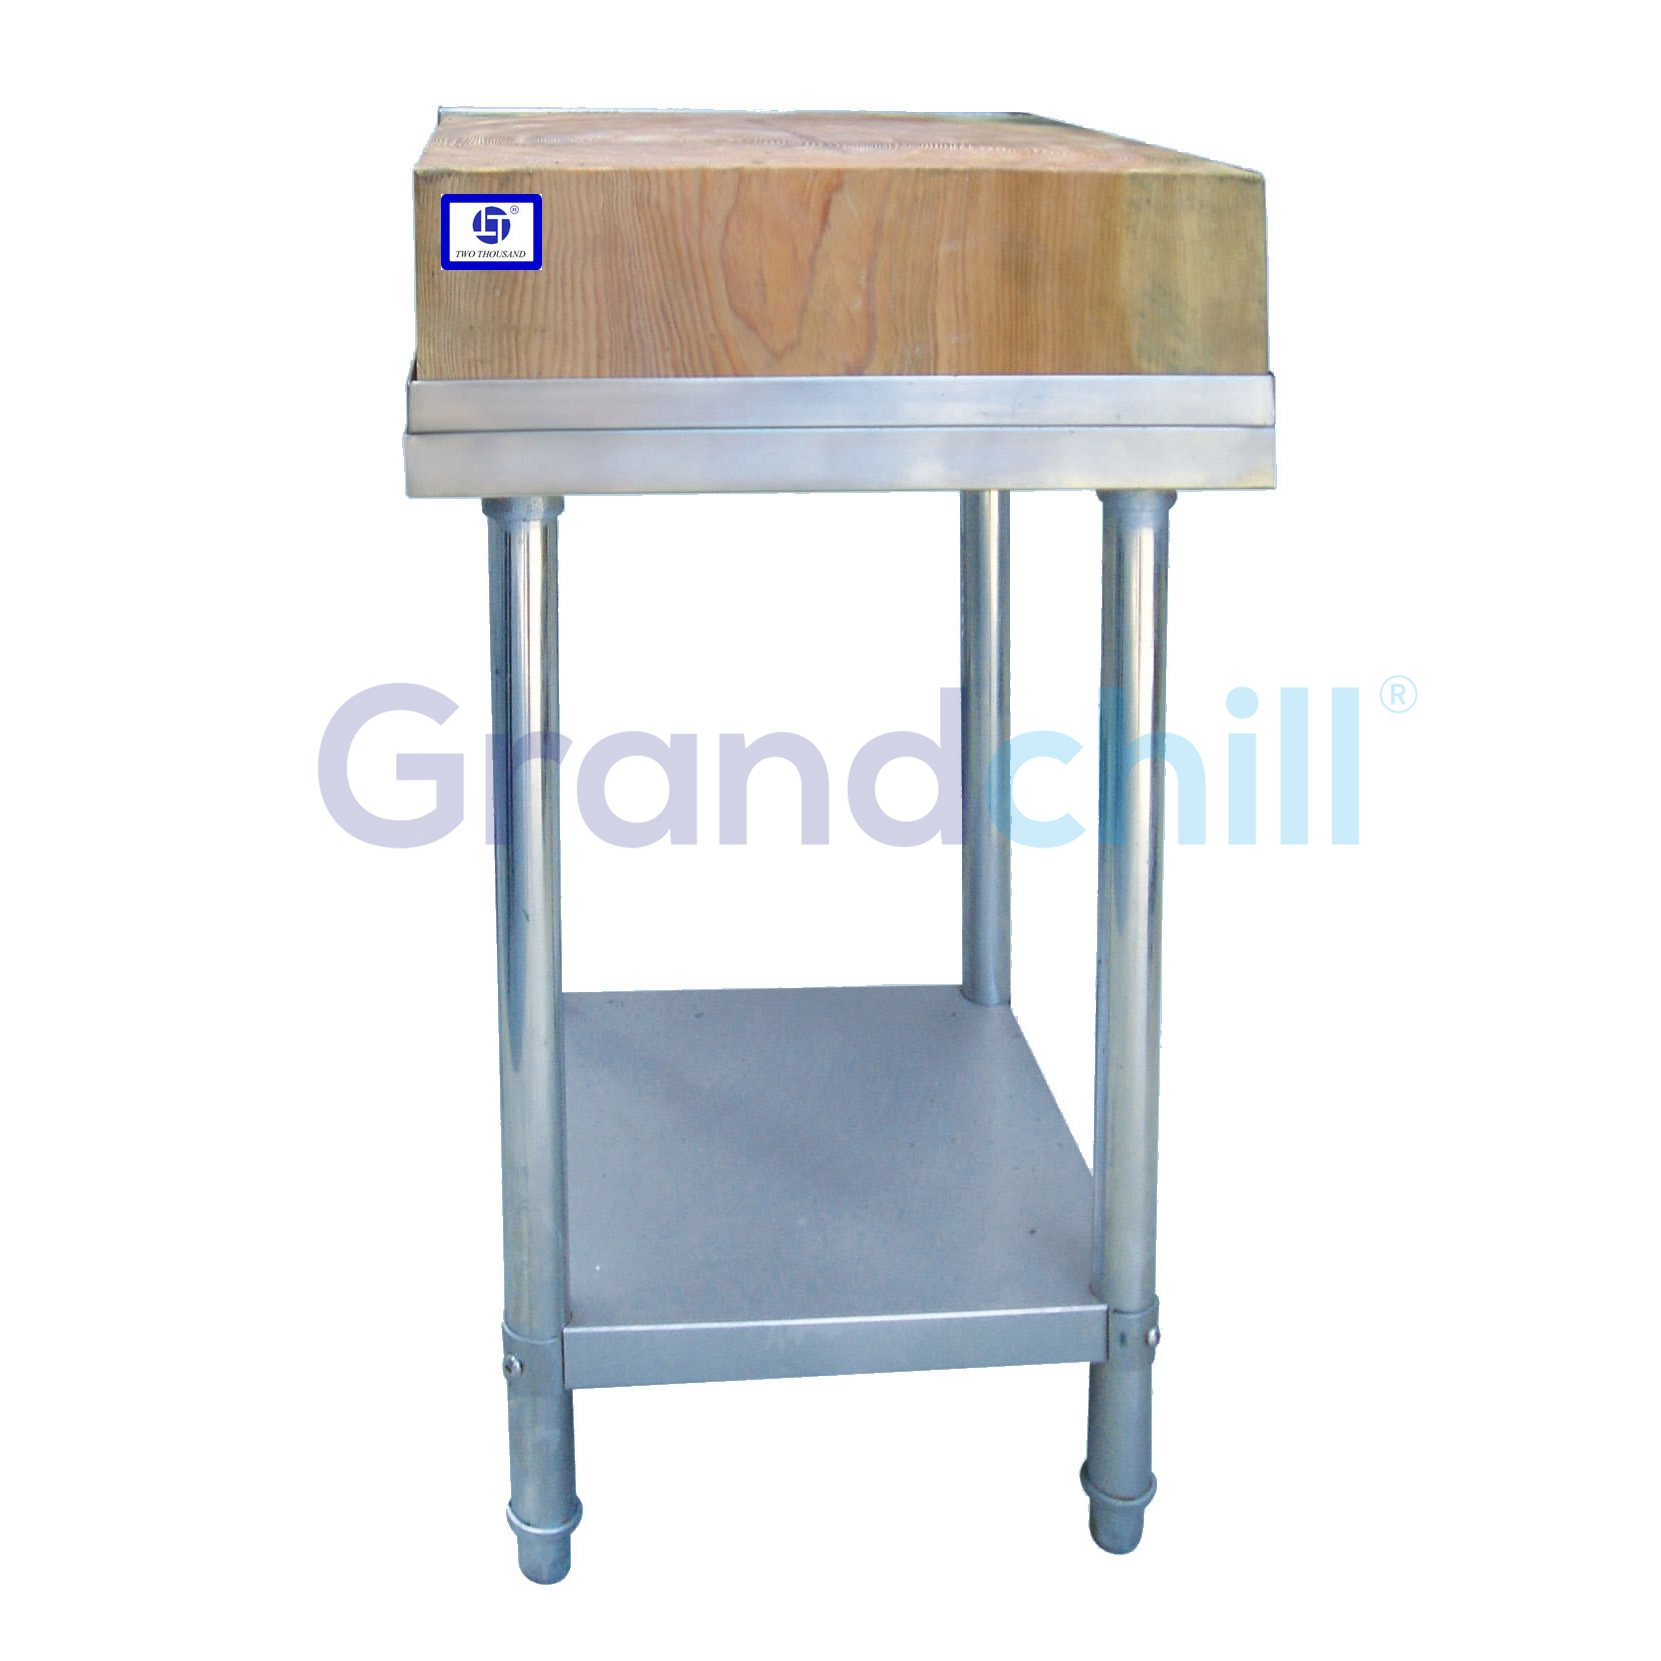 Stainless Steel Fish Cleaning Table At Kitchen Outdoor With Wooden Top    Buy Stainless Steel Fish Cleaning Table Product On Alibaba.com